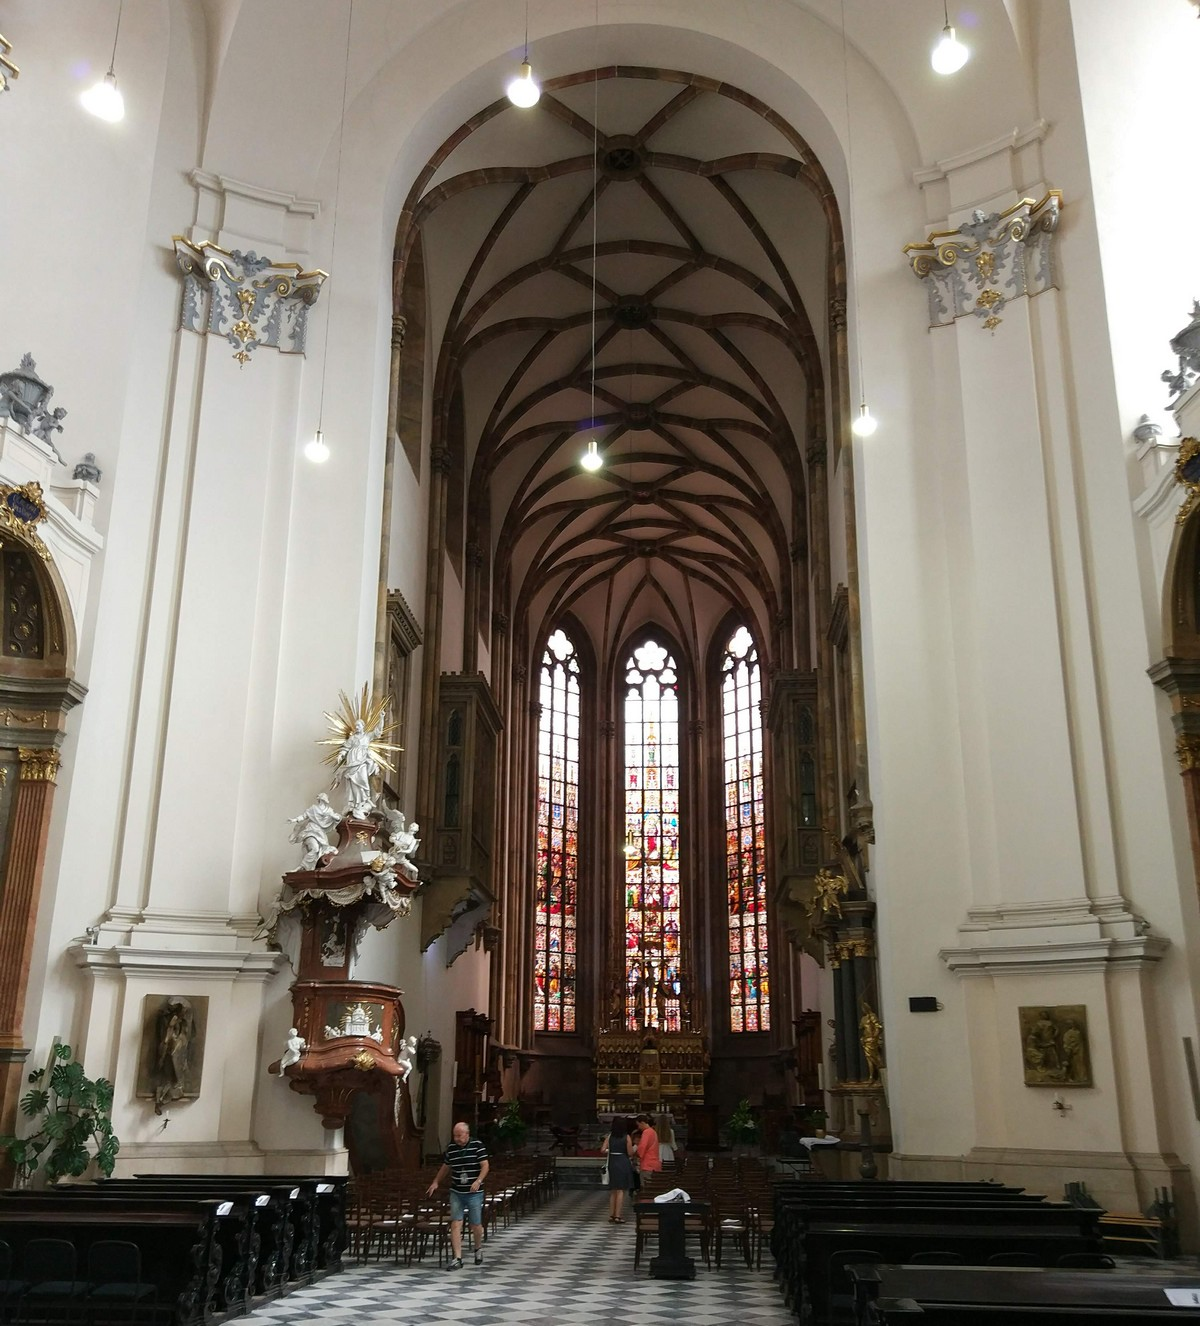 The interior of the Cathedral of St Peter and Paul in Brno